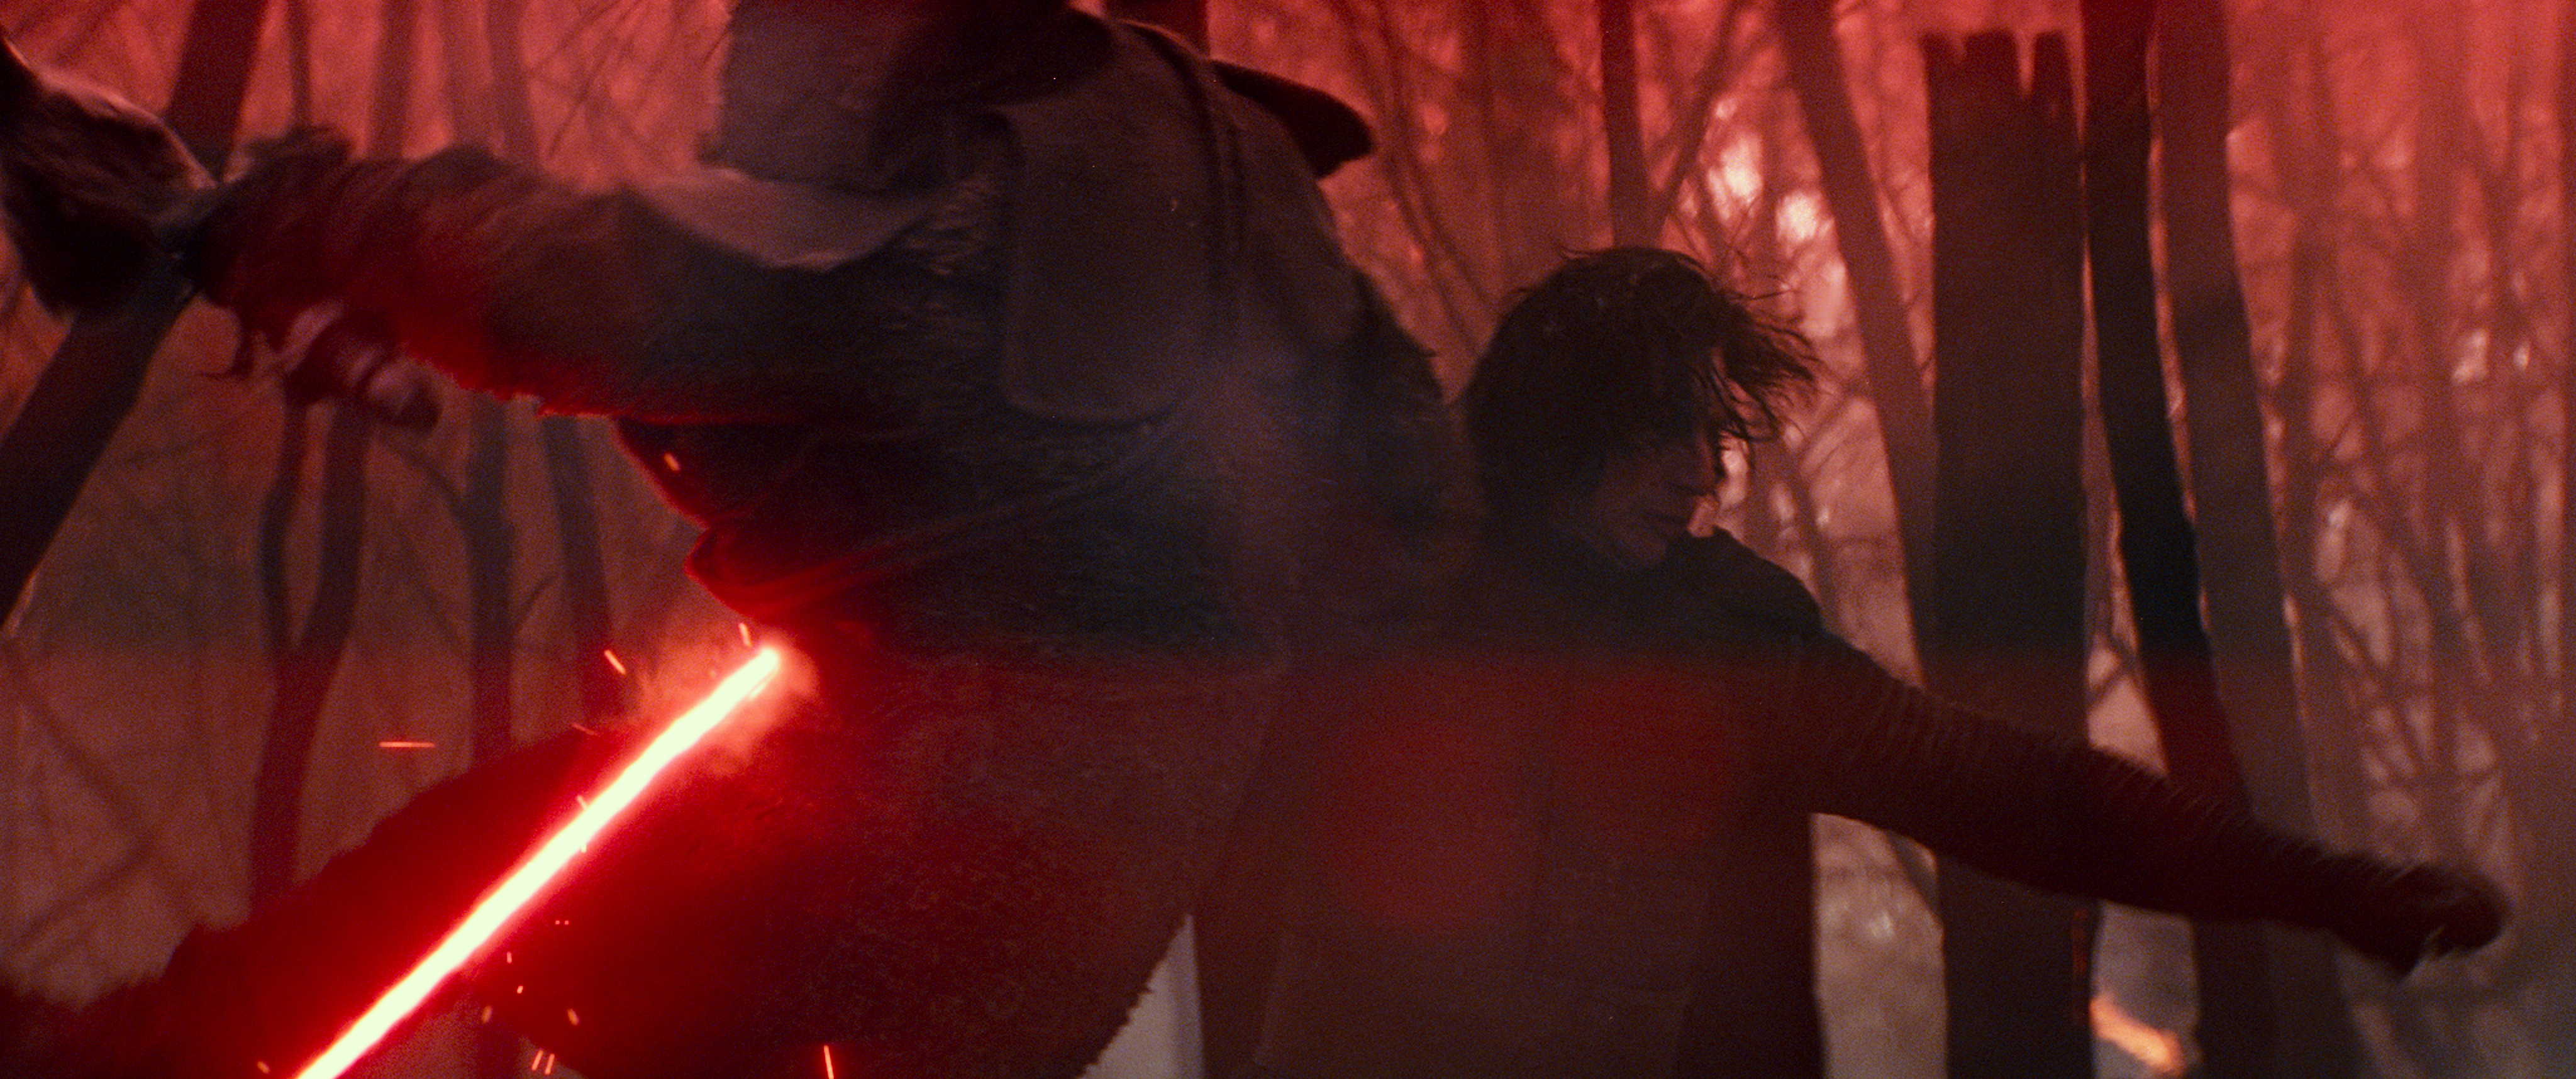 star-wars-the-rise-of-skywalker-kylo-ren.jpg